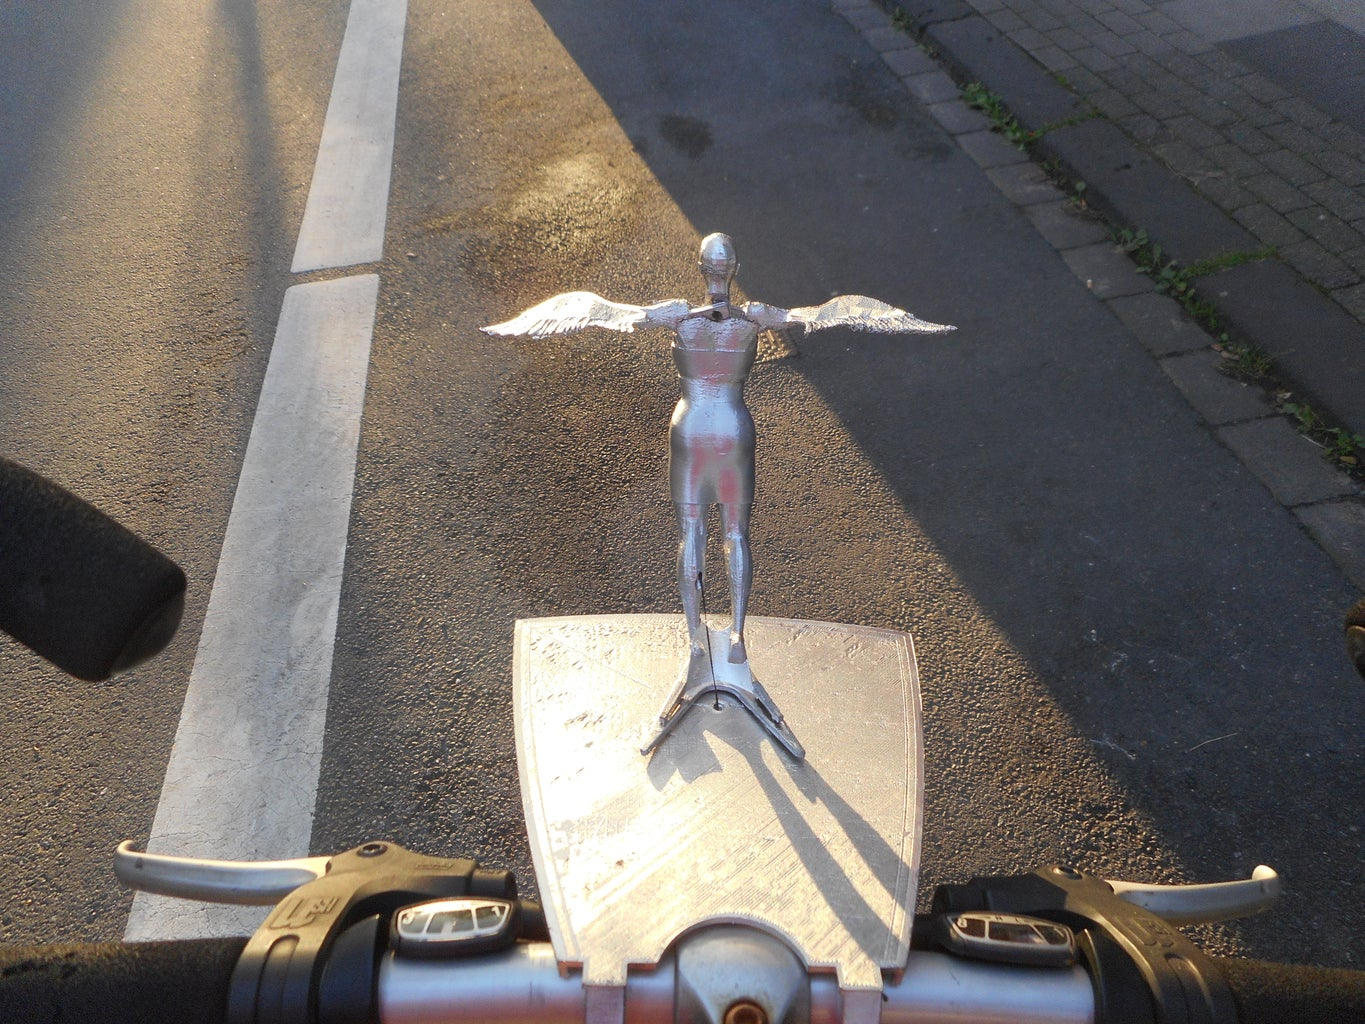 Flapping Bicycle Mascot, Fully 3d Printed